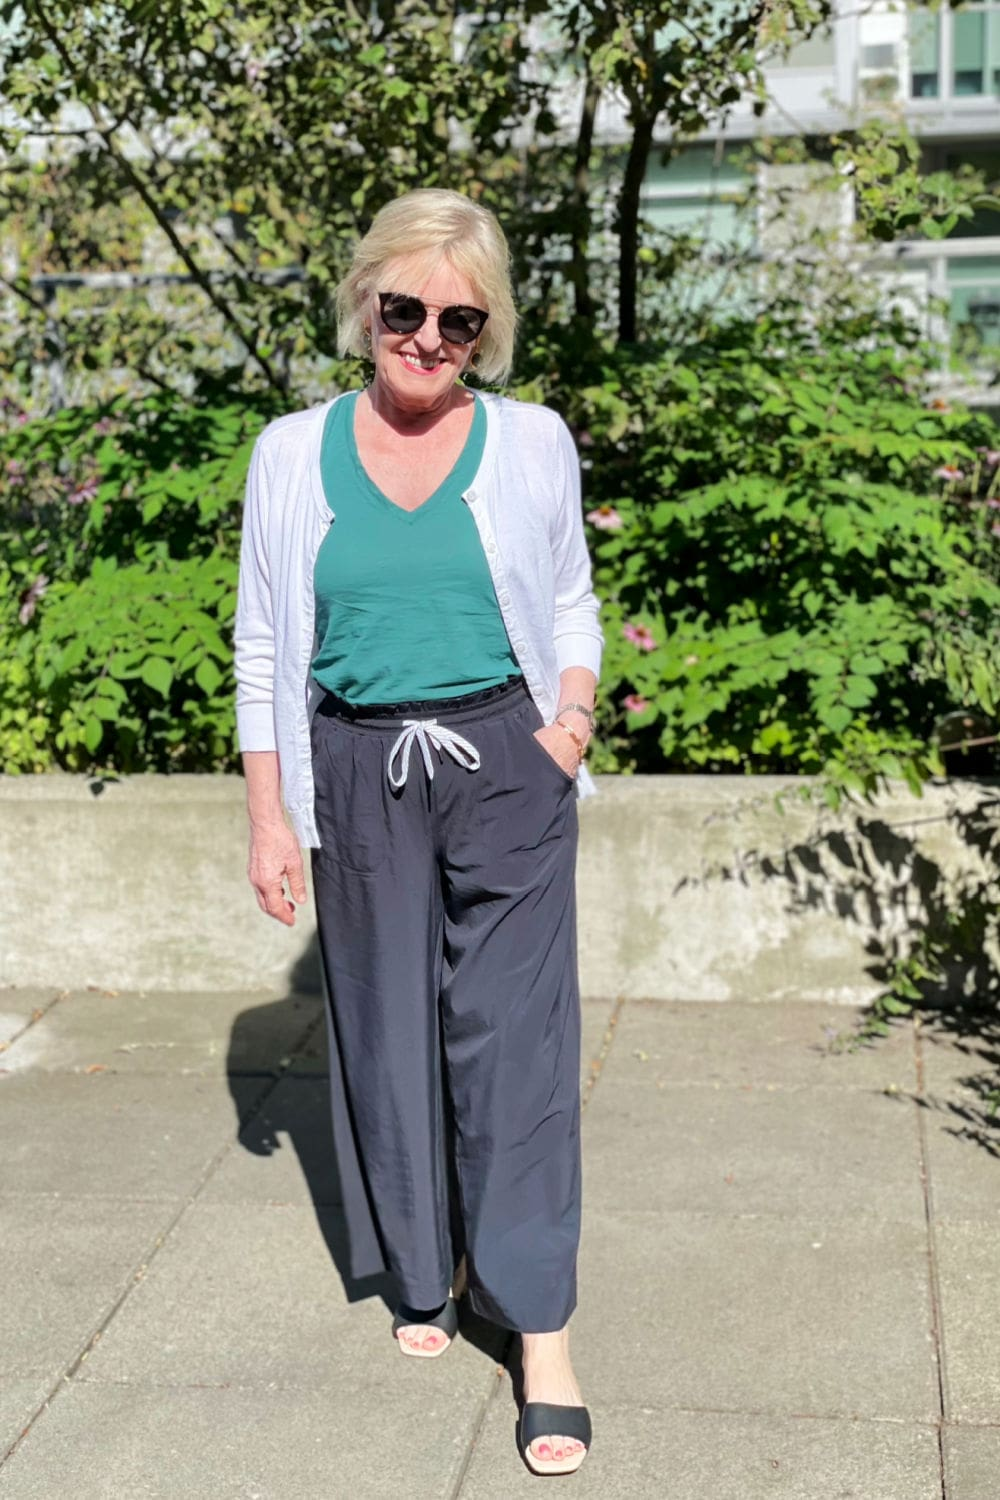 over 50 blogger showing how to dress up athletic pants